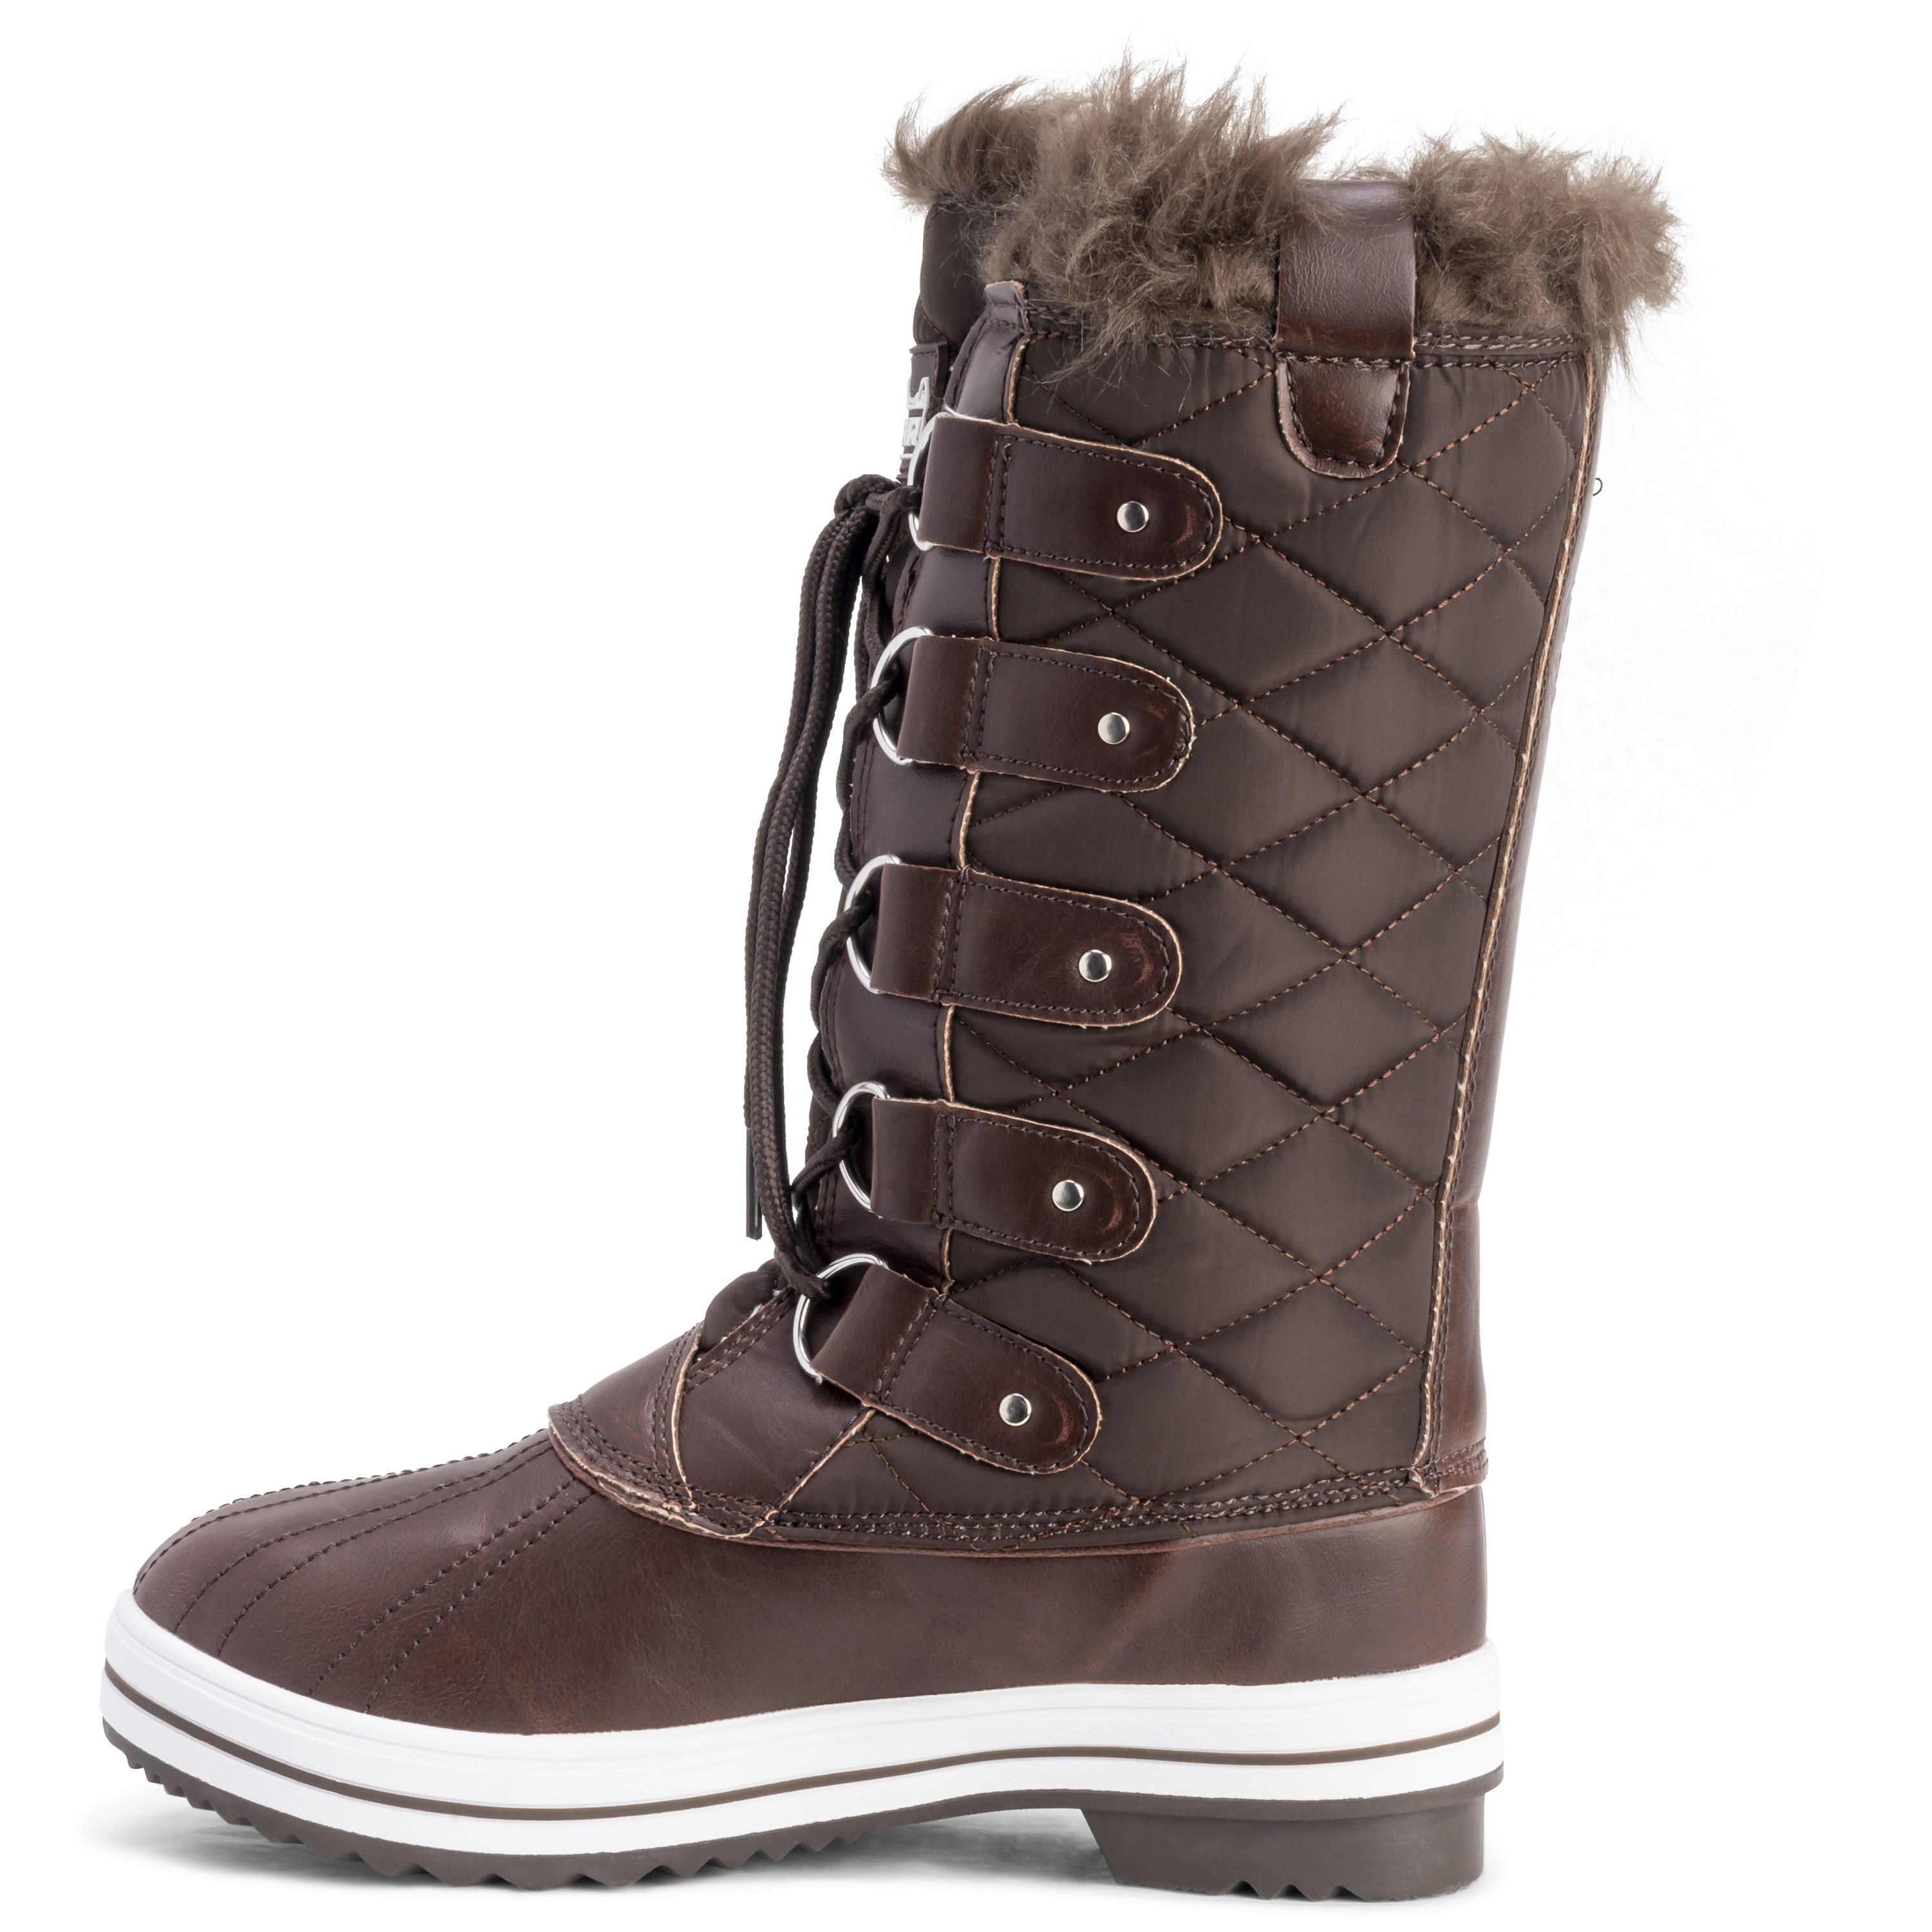 Brilliant Read On For A Full List Of Brands And Stores That Are Currently Offering Deals On Winter Footwear, And Find The Leading Styles To Consider For Winter 2017 JC Penny JC Penny Is Currently Offering 40 Percent Off Select Apparel, Womens Shoes,